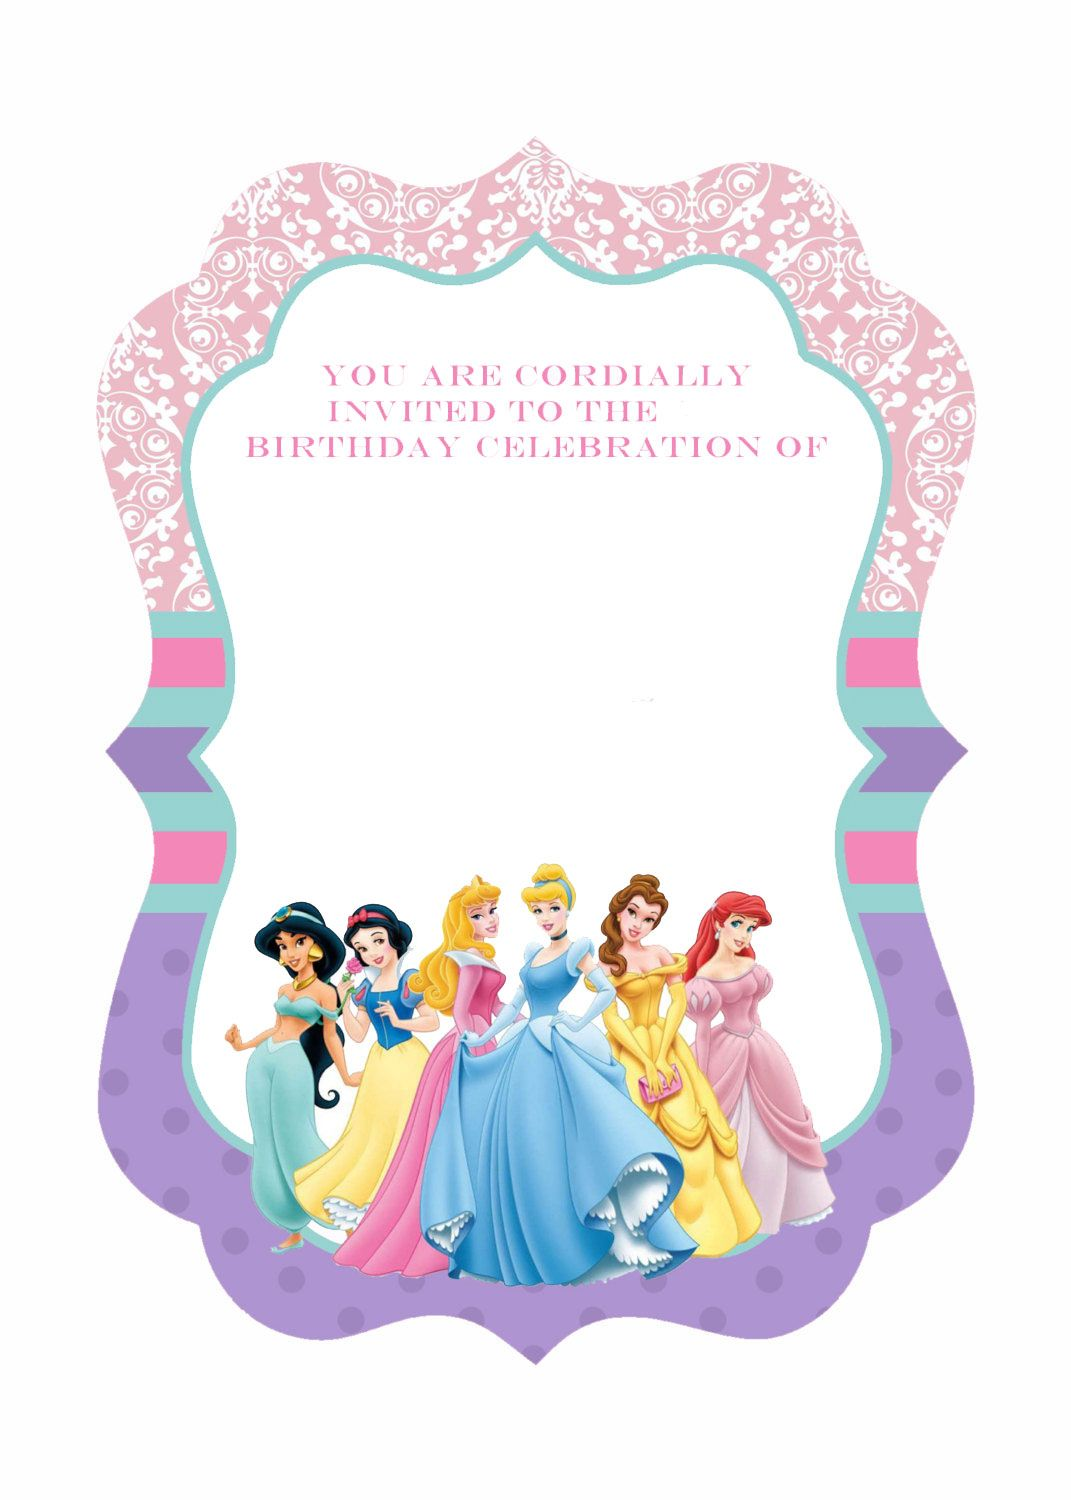 photo relating to Disney Princess Birthday Invitations Free Printable referred to as Awesome Free of charge Template Cost-free Printable Ornate Disney Princesses